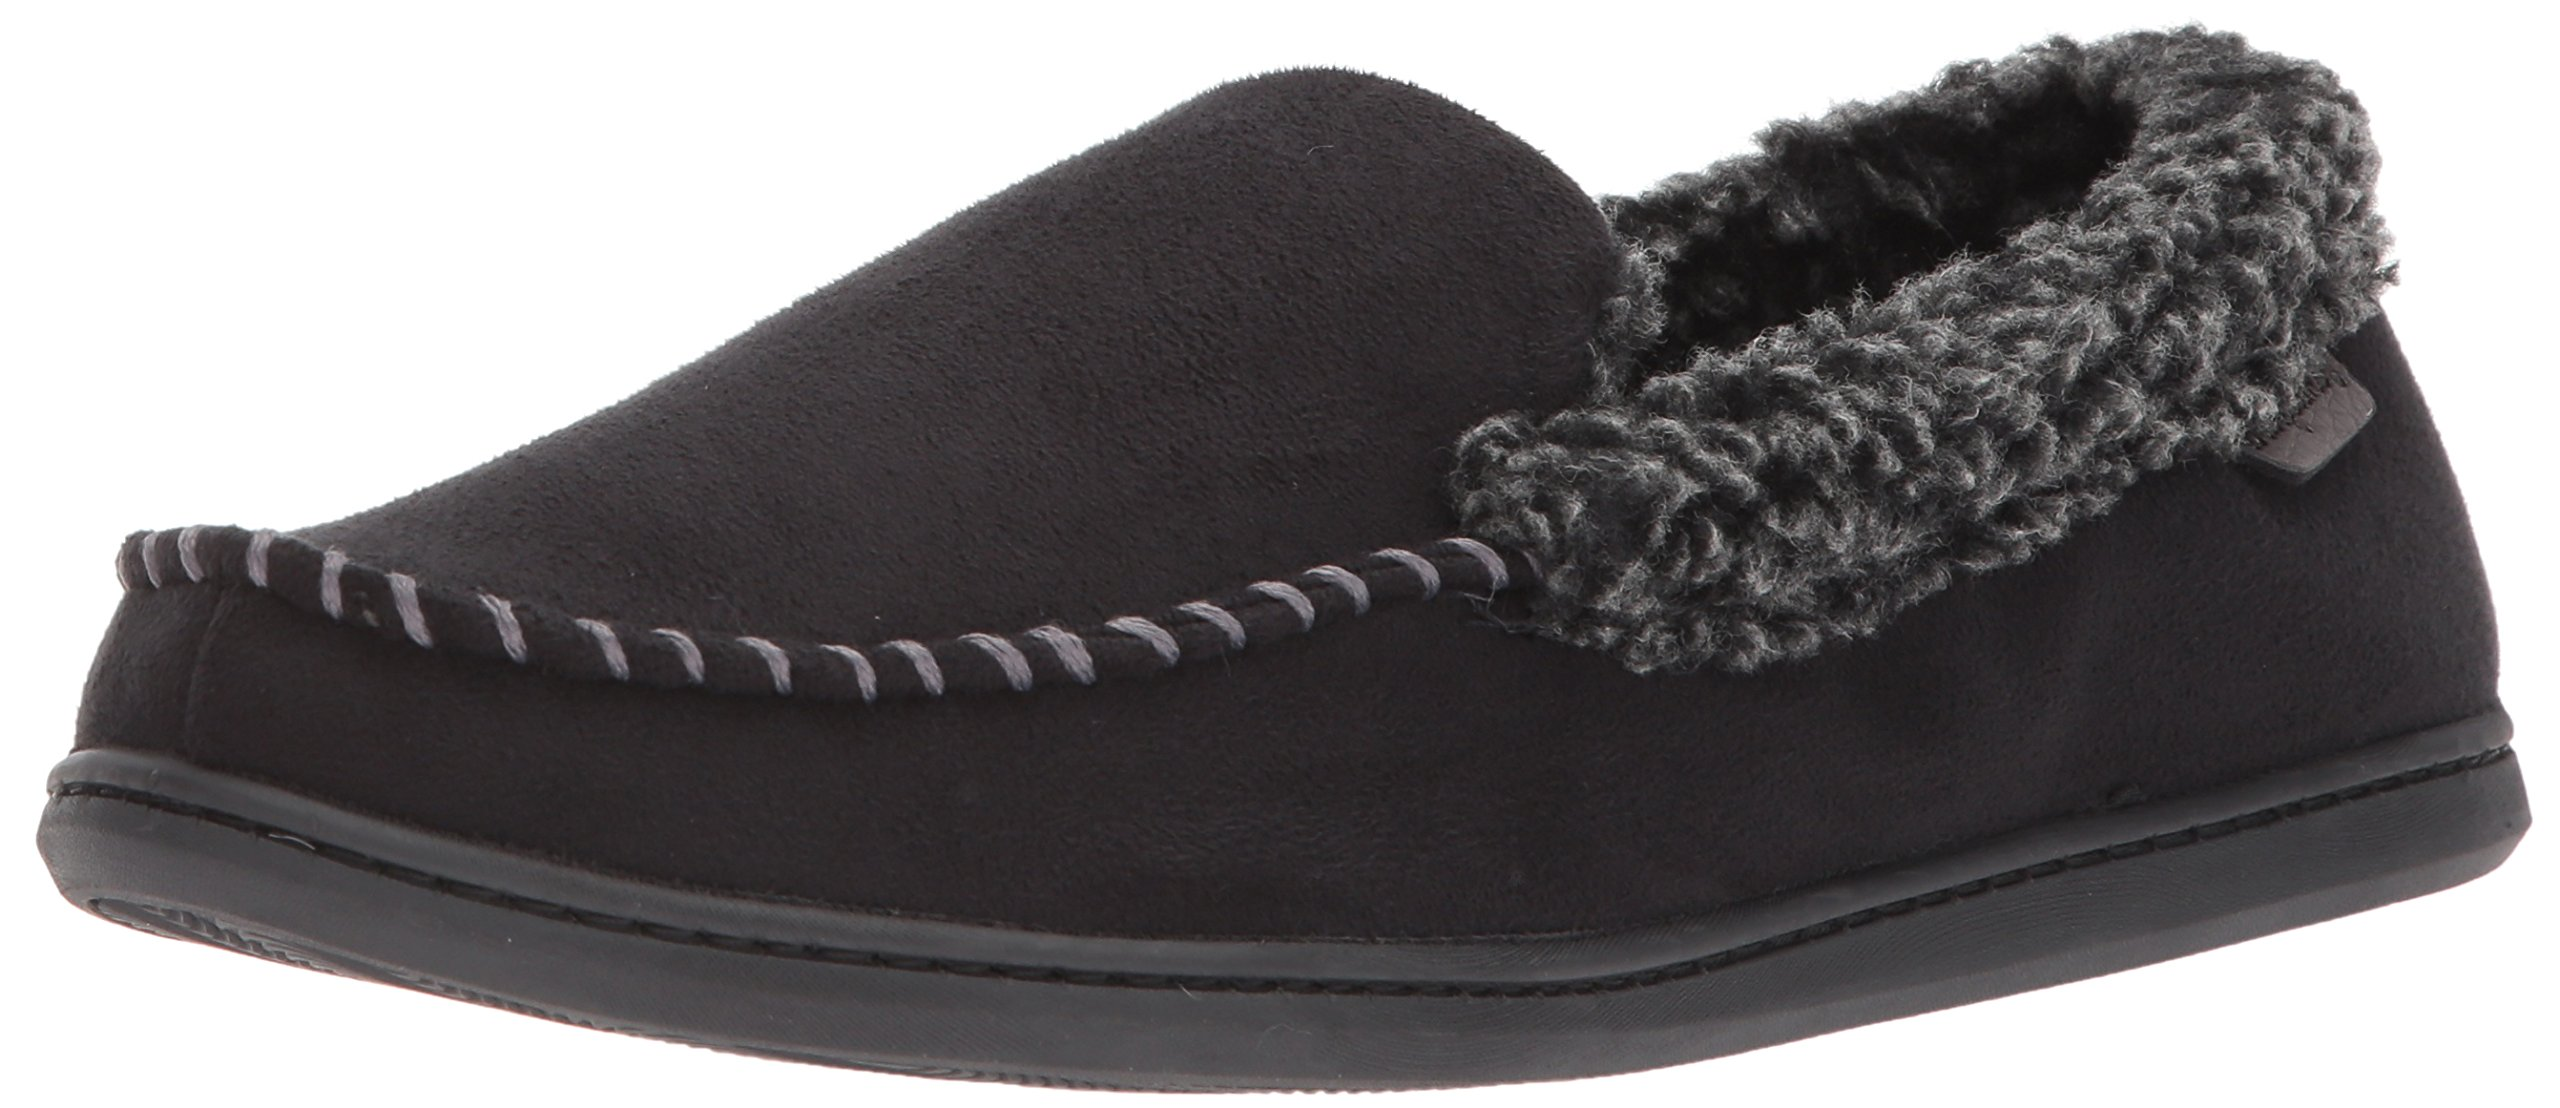 Dearfoams Men's Microfiber Suede Closed Back Moccasin Style Slipper – Padded Slip-ONS with Memory Foam Insole, Can be Worn Indoors and Outdoors